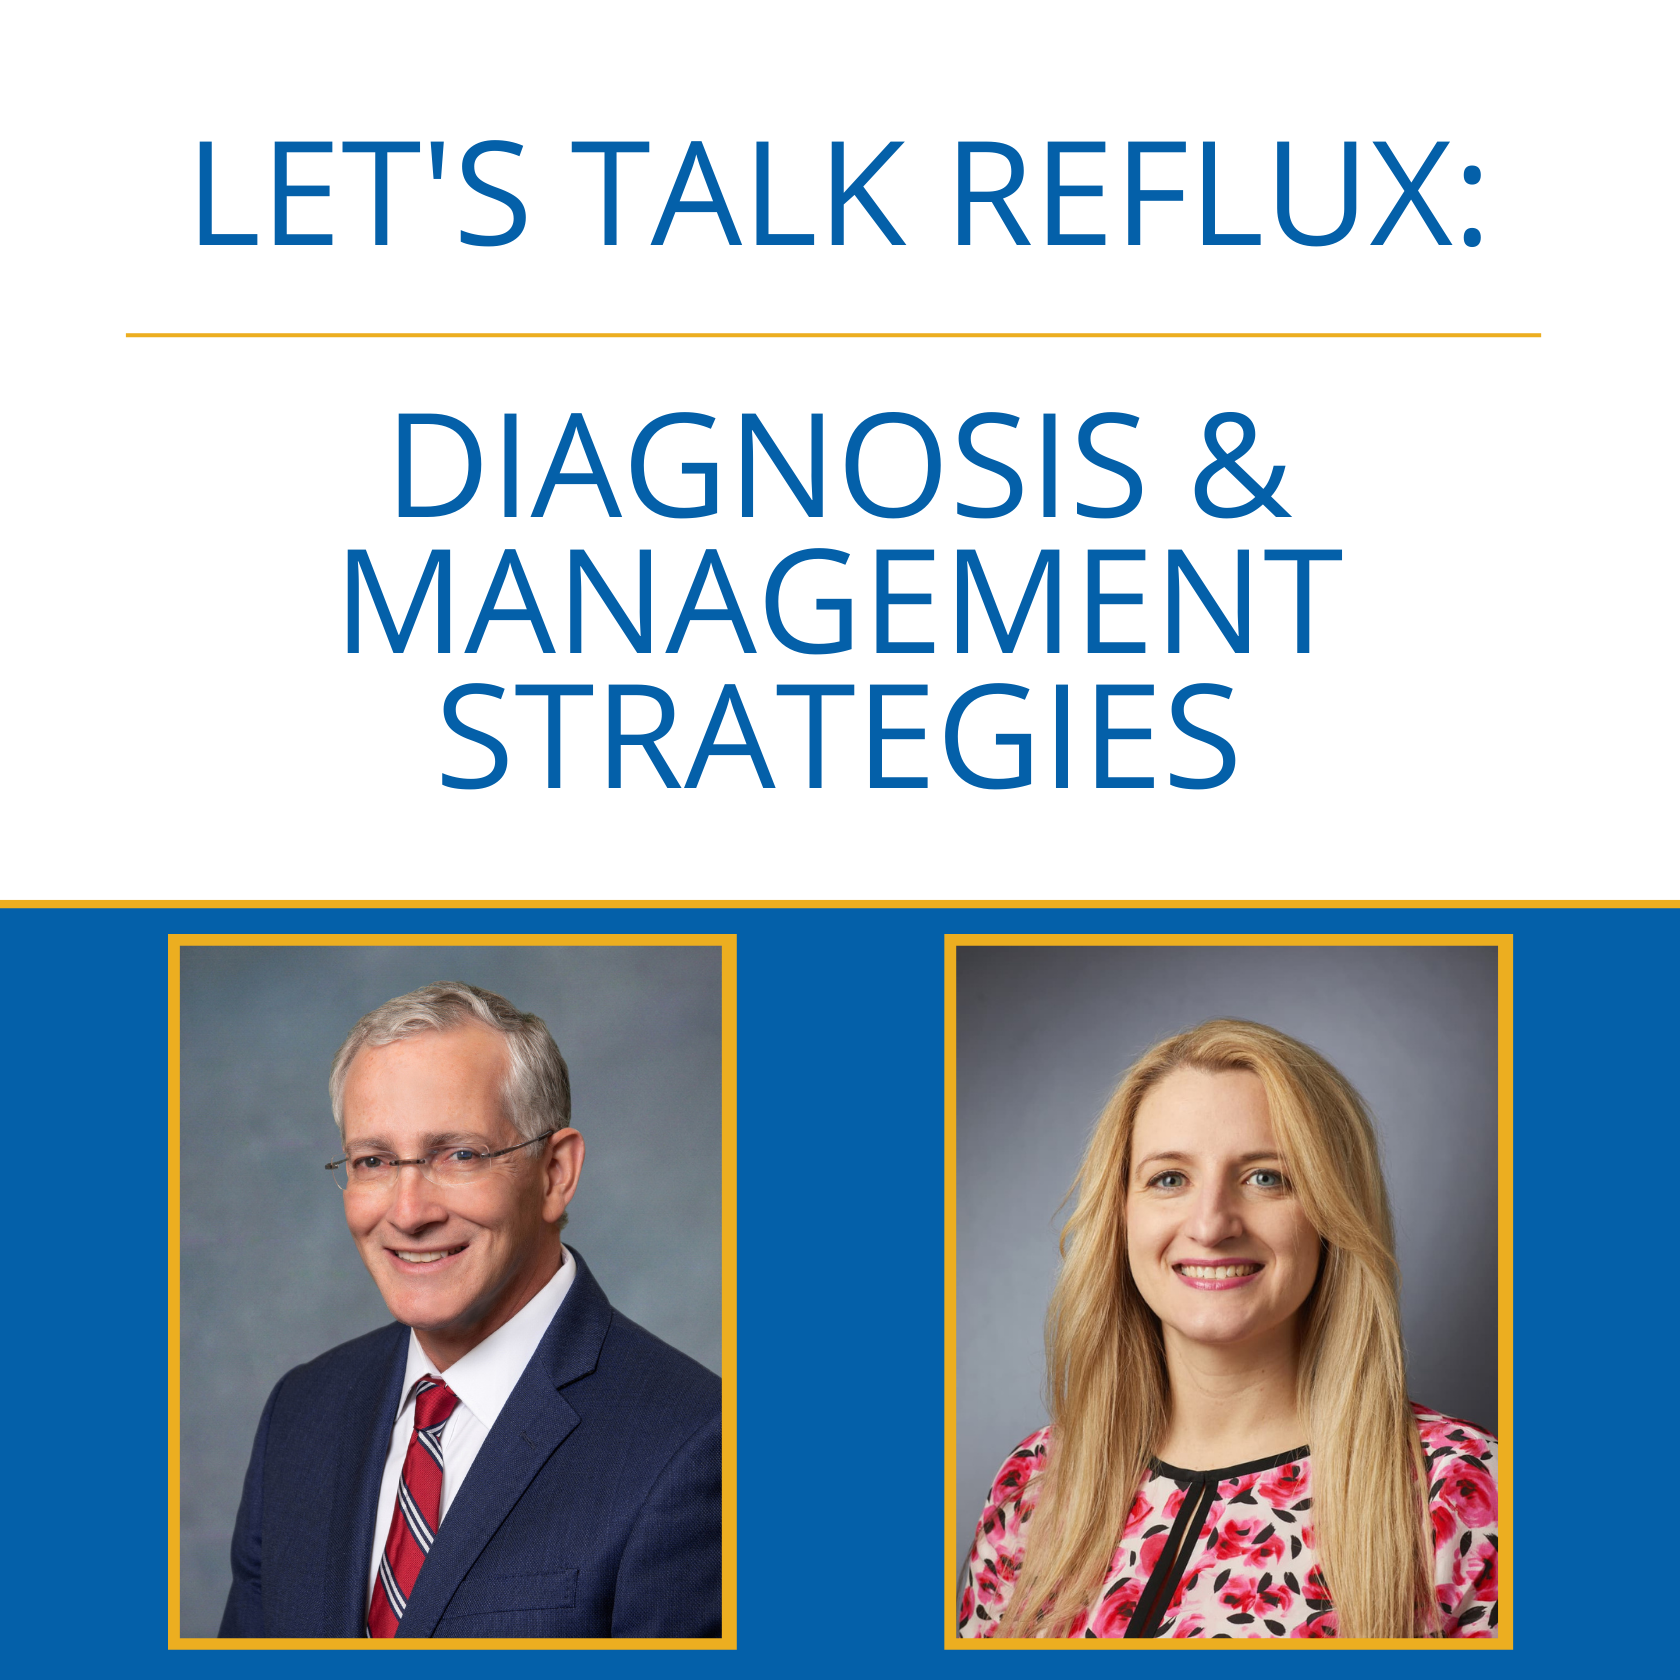 Let's Talk Reflux: Thoughtful Strategies in Diagnosis and Management